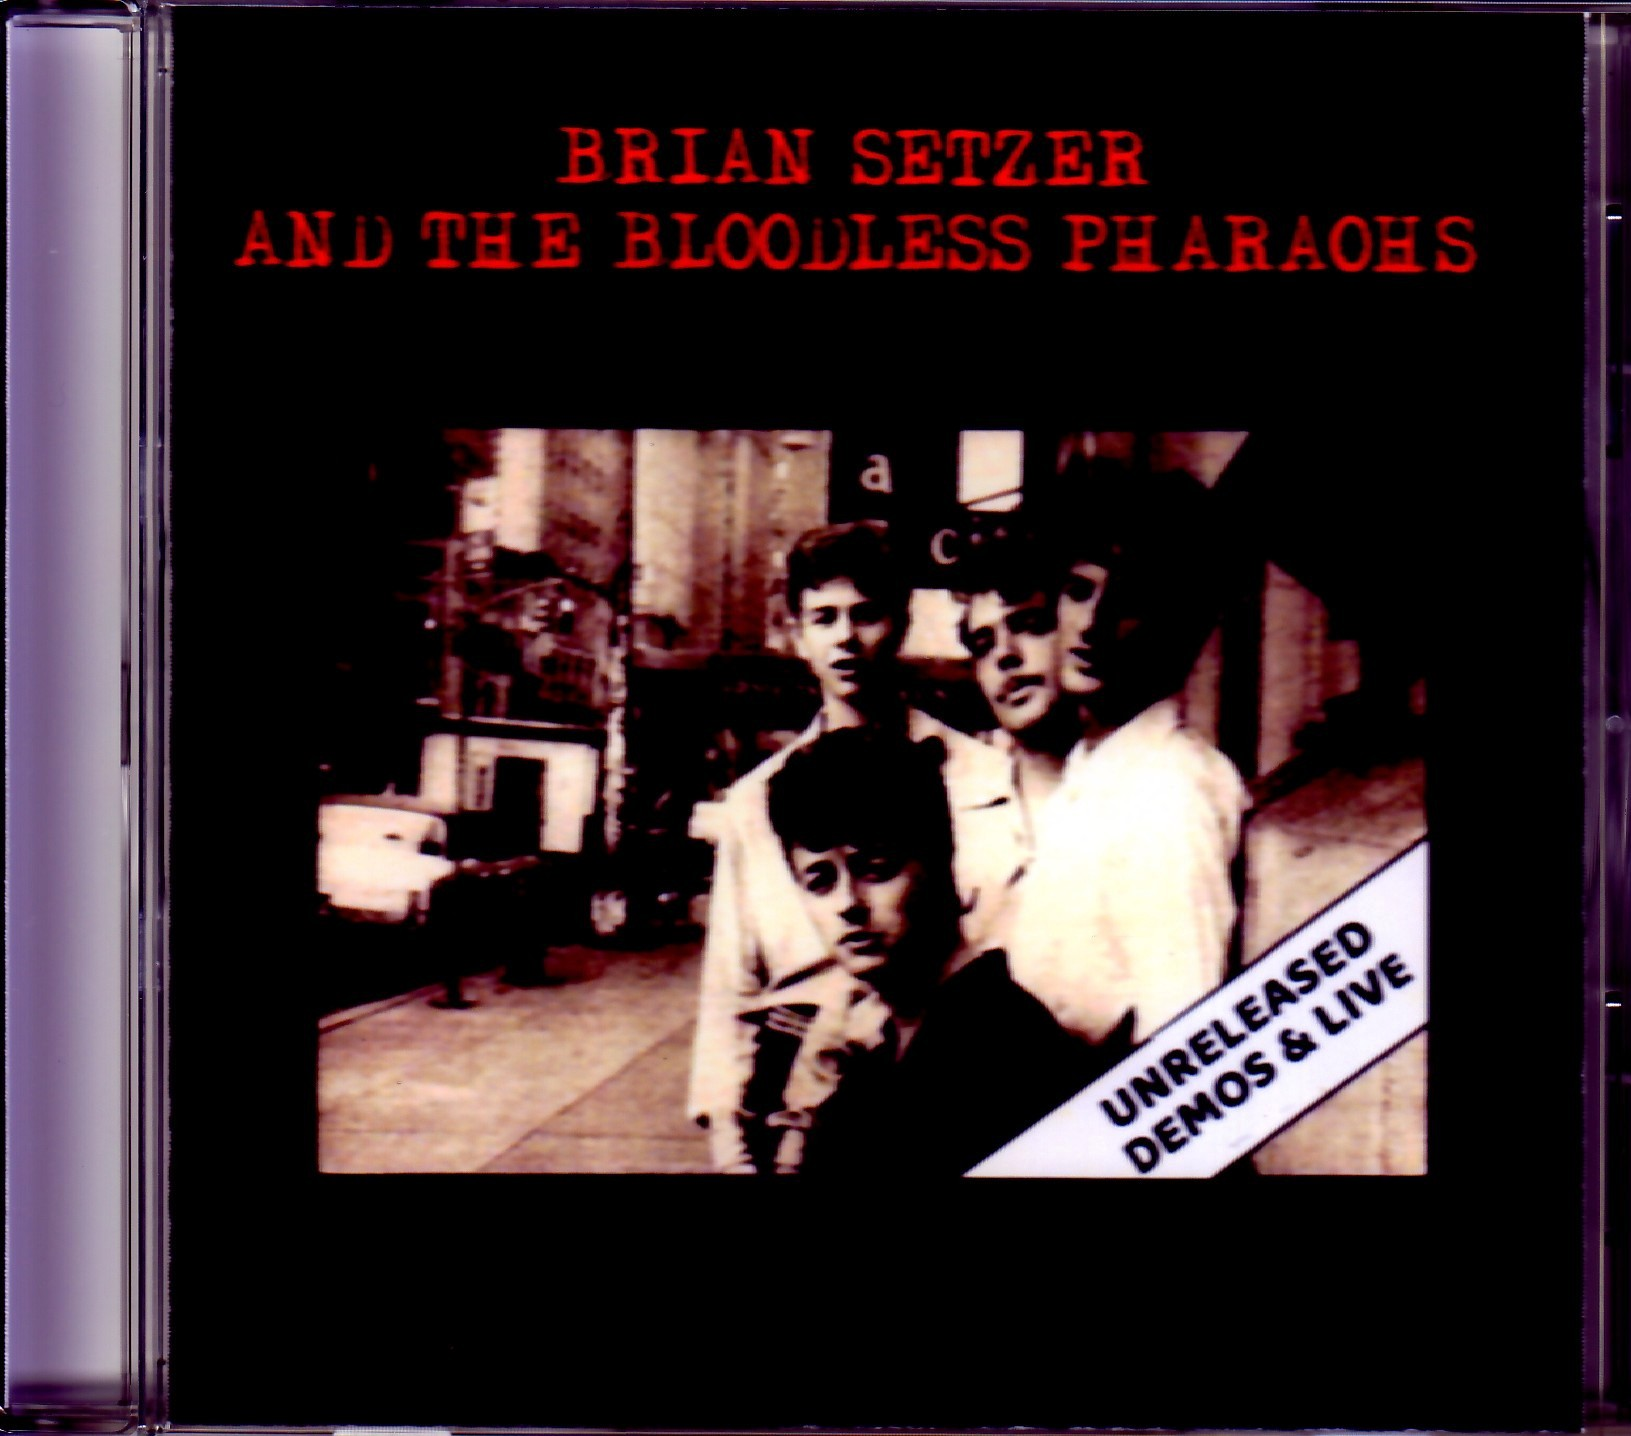 Brian Setzer and the Bloodless Pharaohs ブライアン・セッツアー/Unreleased Demos & Live 1978